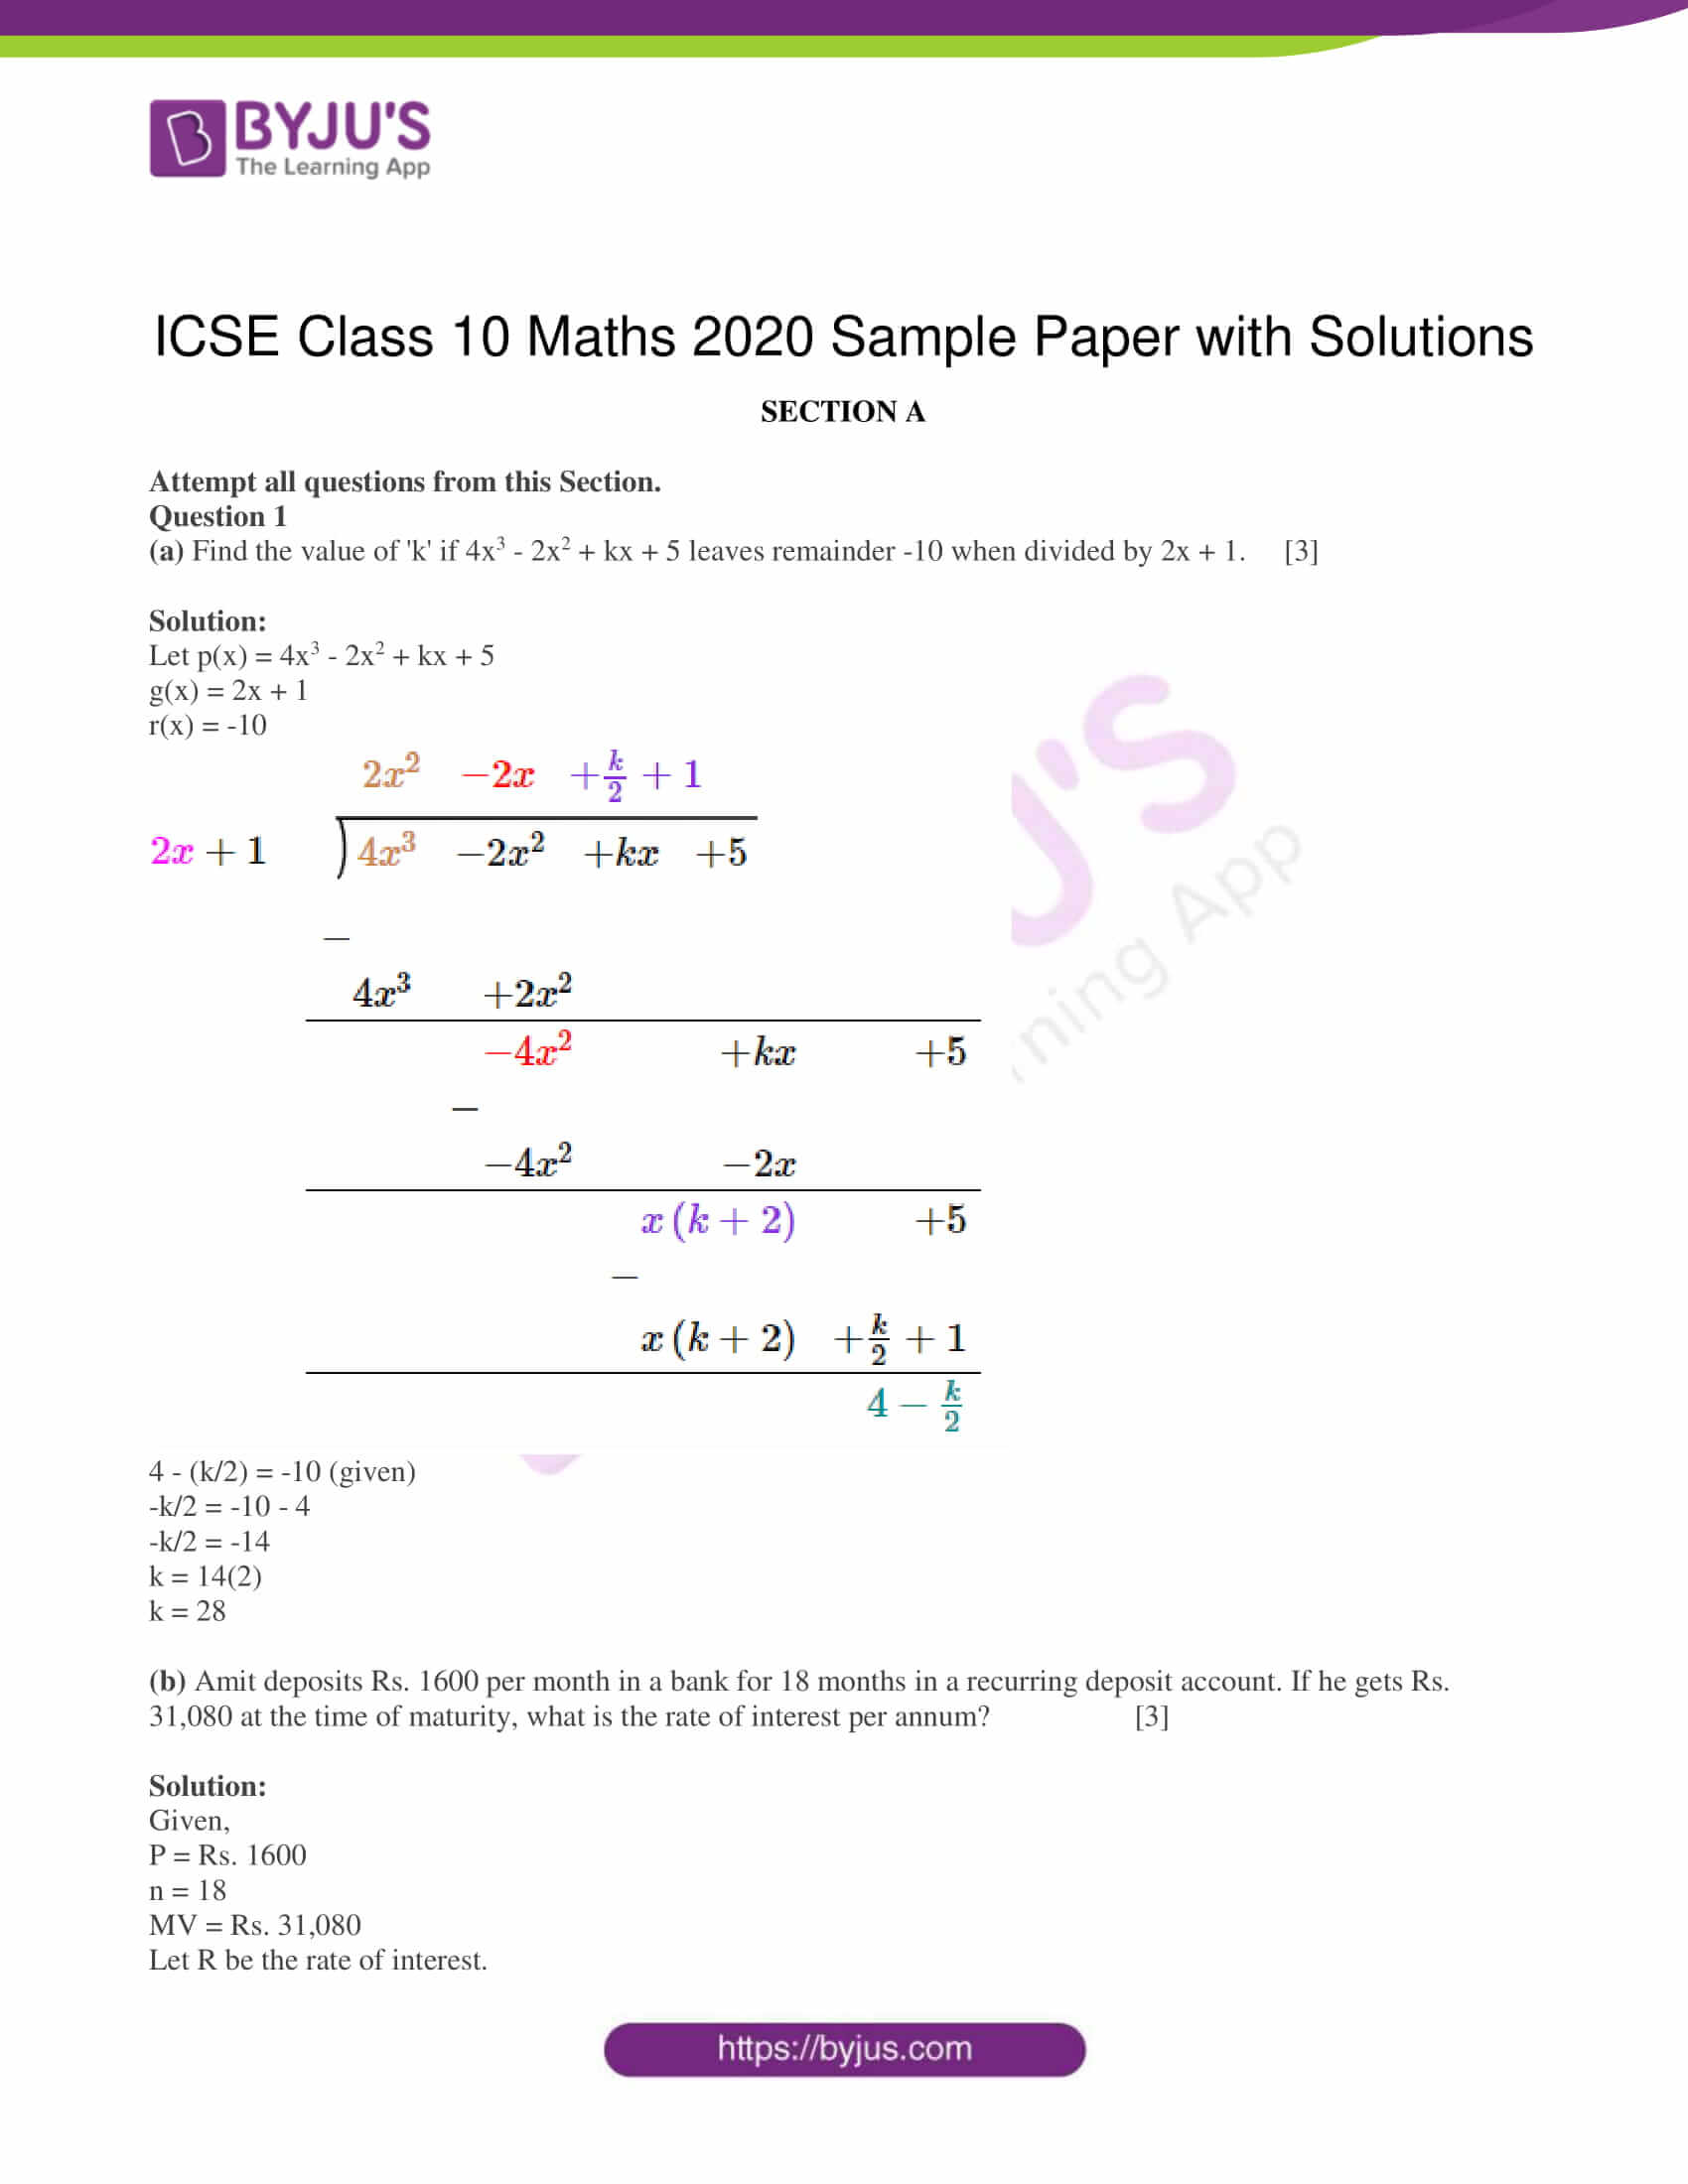 icse class 10 maths 2020 sample paper with solutions 01